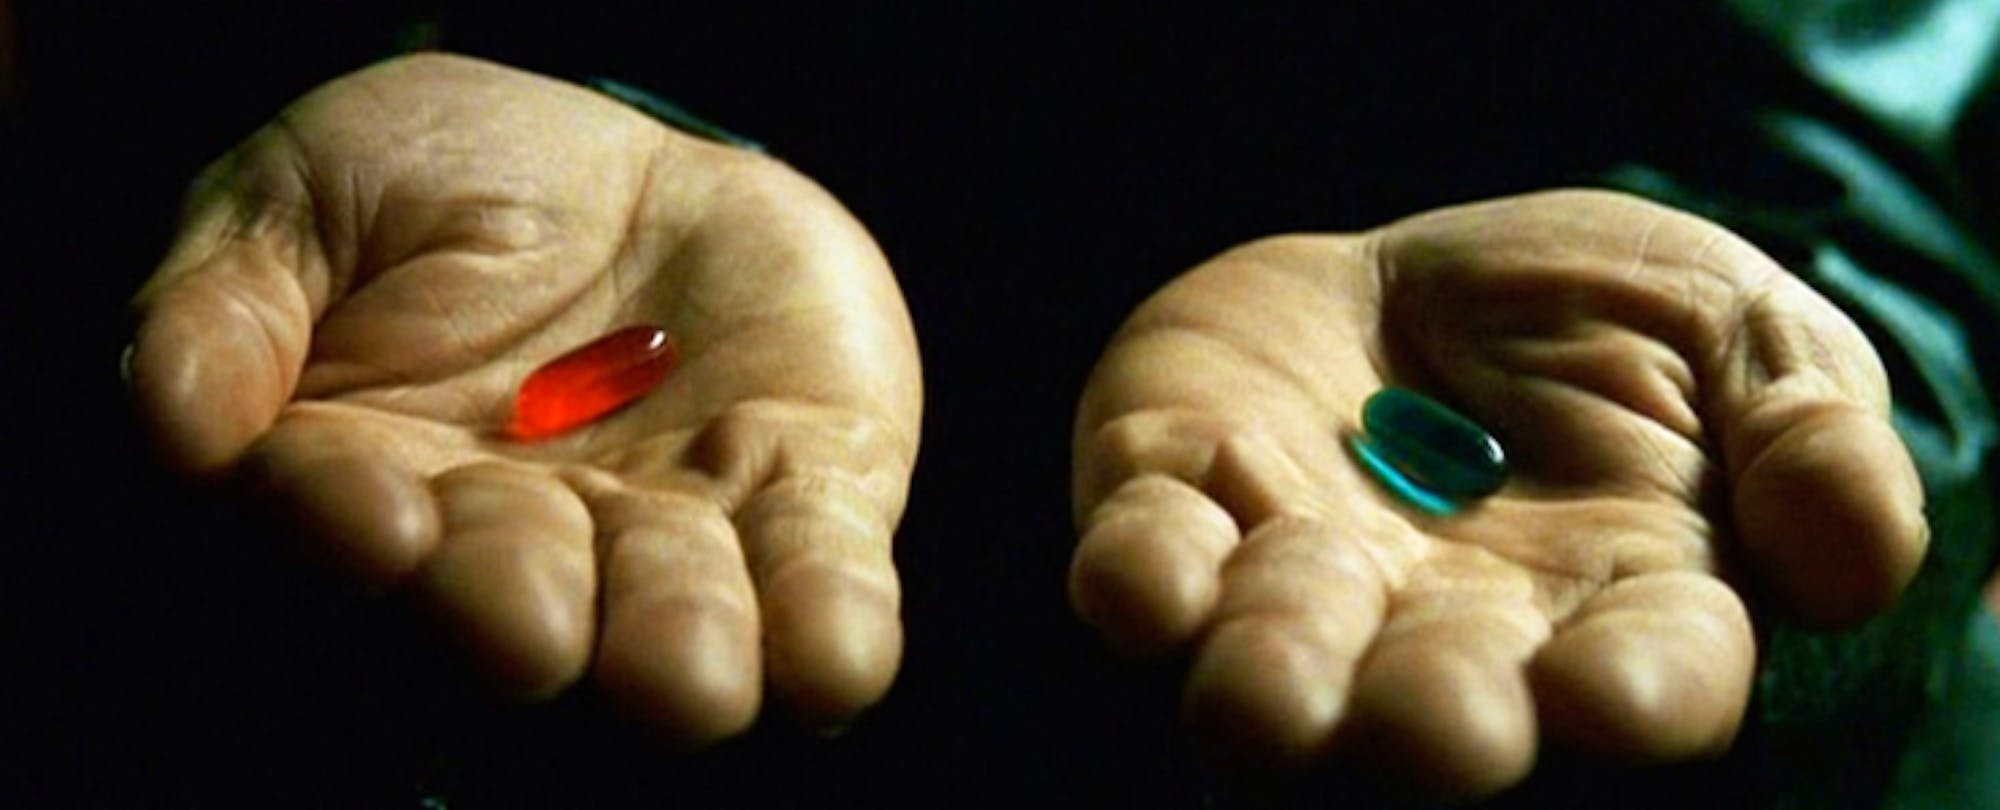 K12 Innovators, Take The Red Pill